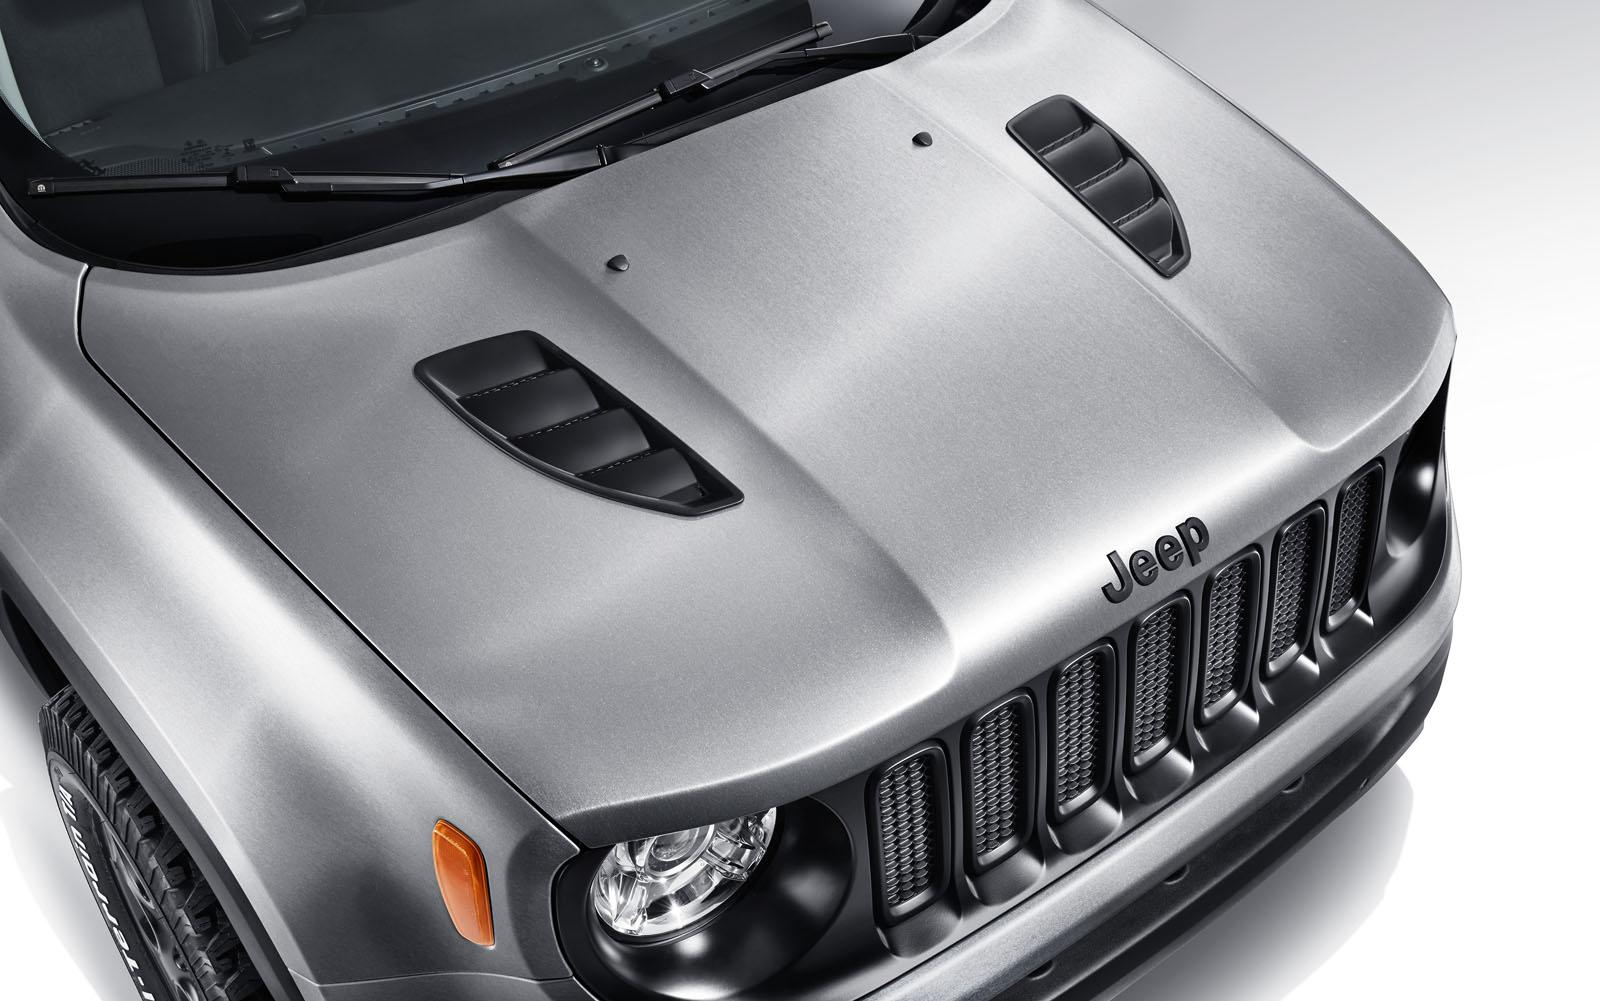 renegade jeep steel brushed pimped trailer gets geneva paint open hood autoevolution concept cool